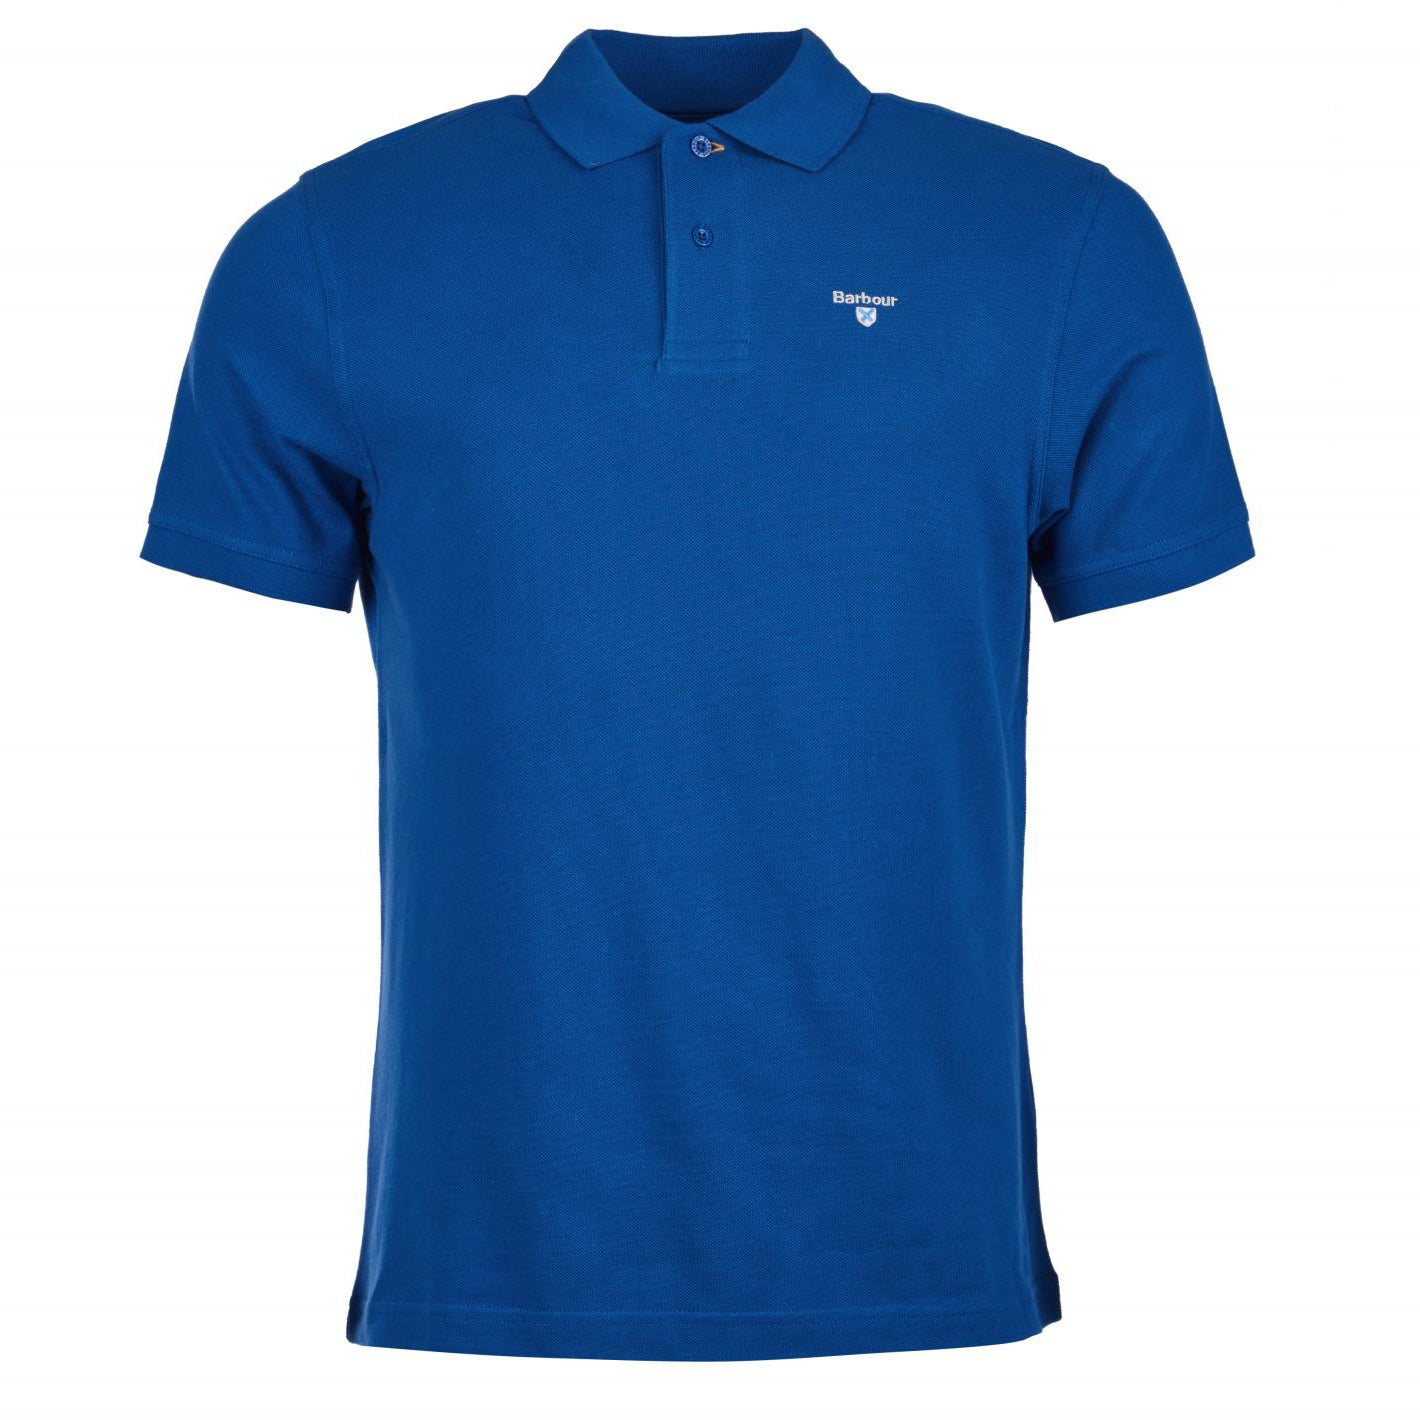 Barbour Sports Short Sleeve Polo Shirt Atlantic Blue